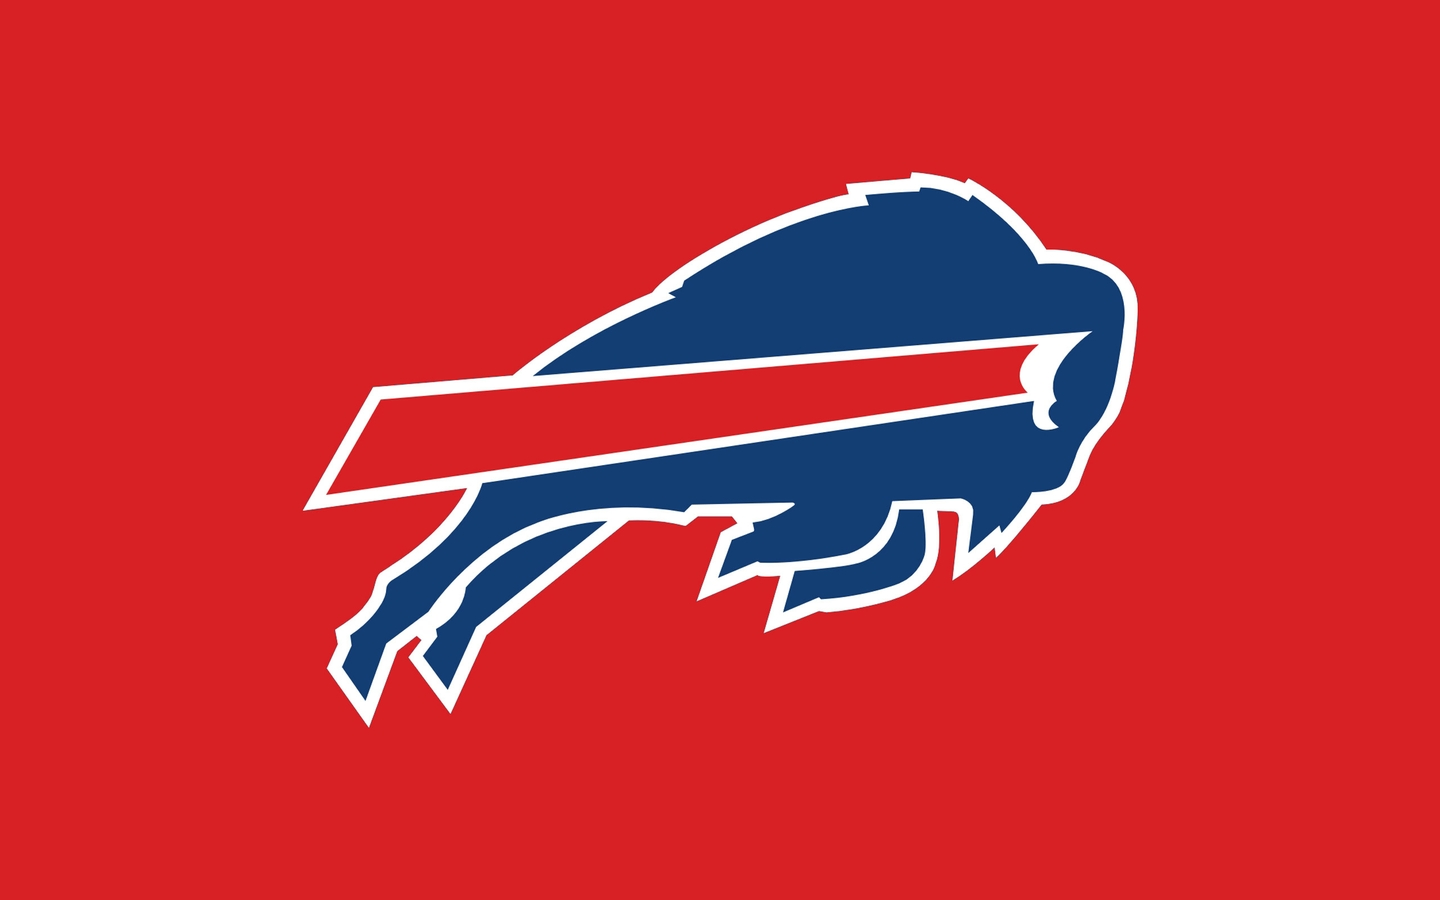 nfl wallpapers nfl wallpapers 5 Sources of Buffalo Bills Wallpaper 1440x900